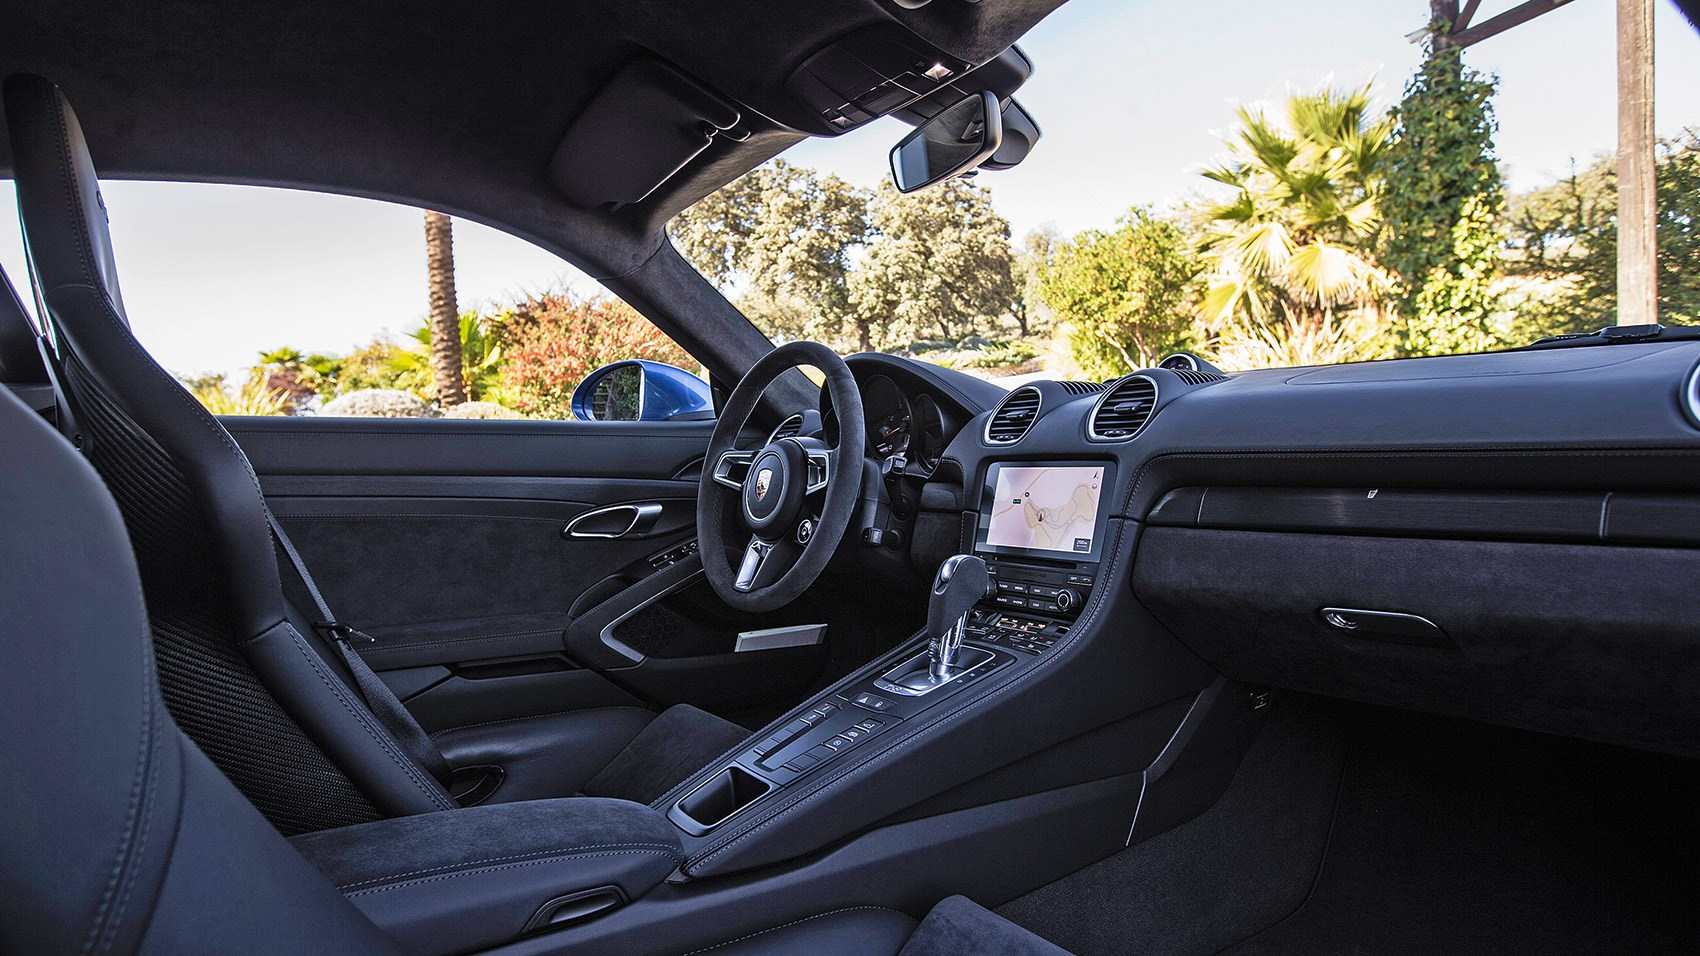 Porsche 718 Cayman GTS: the interior and cabin